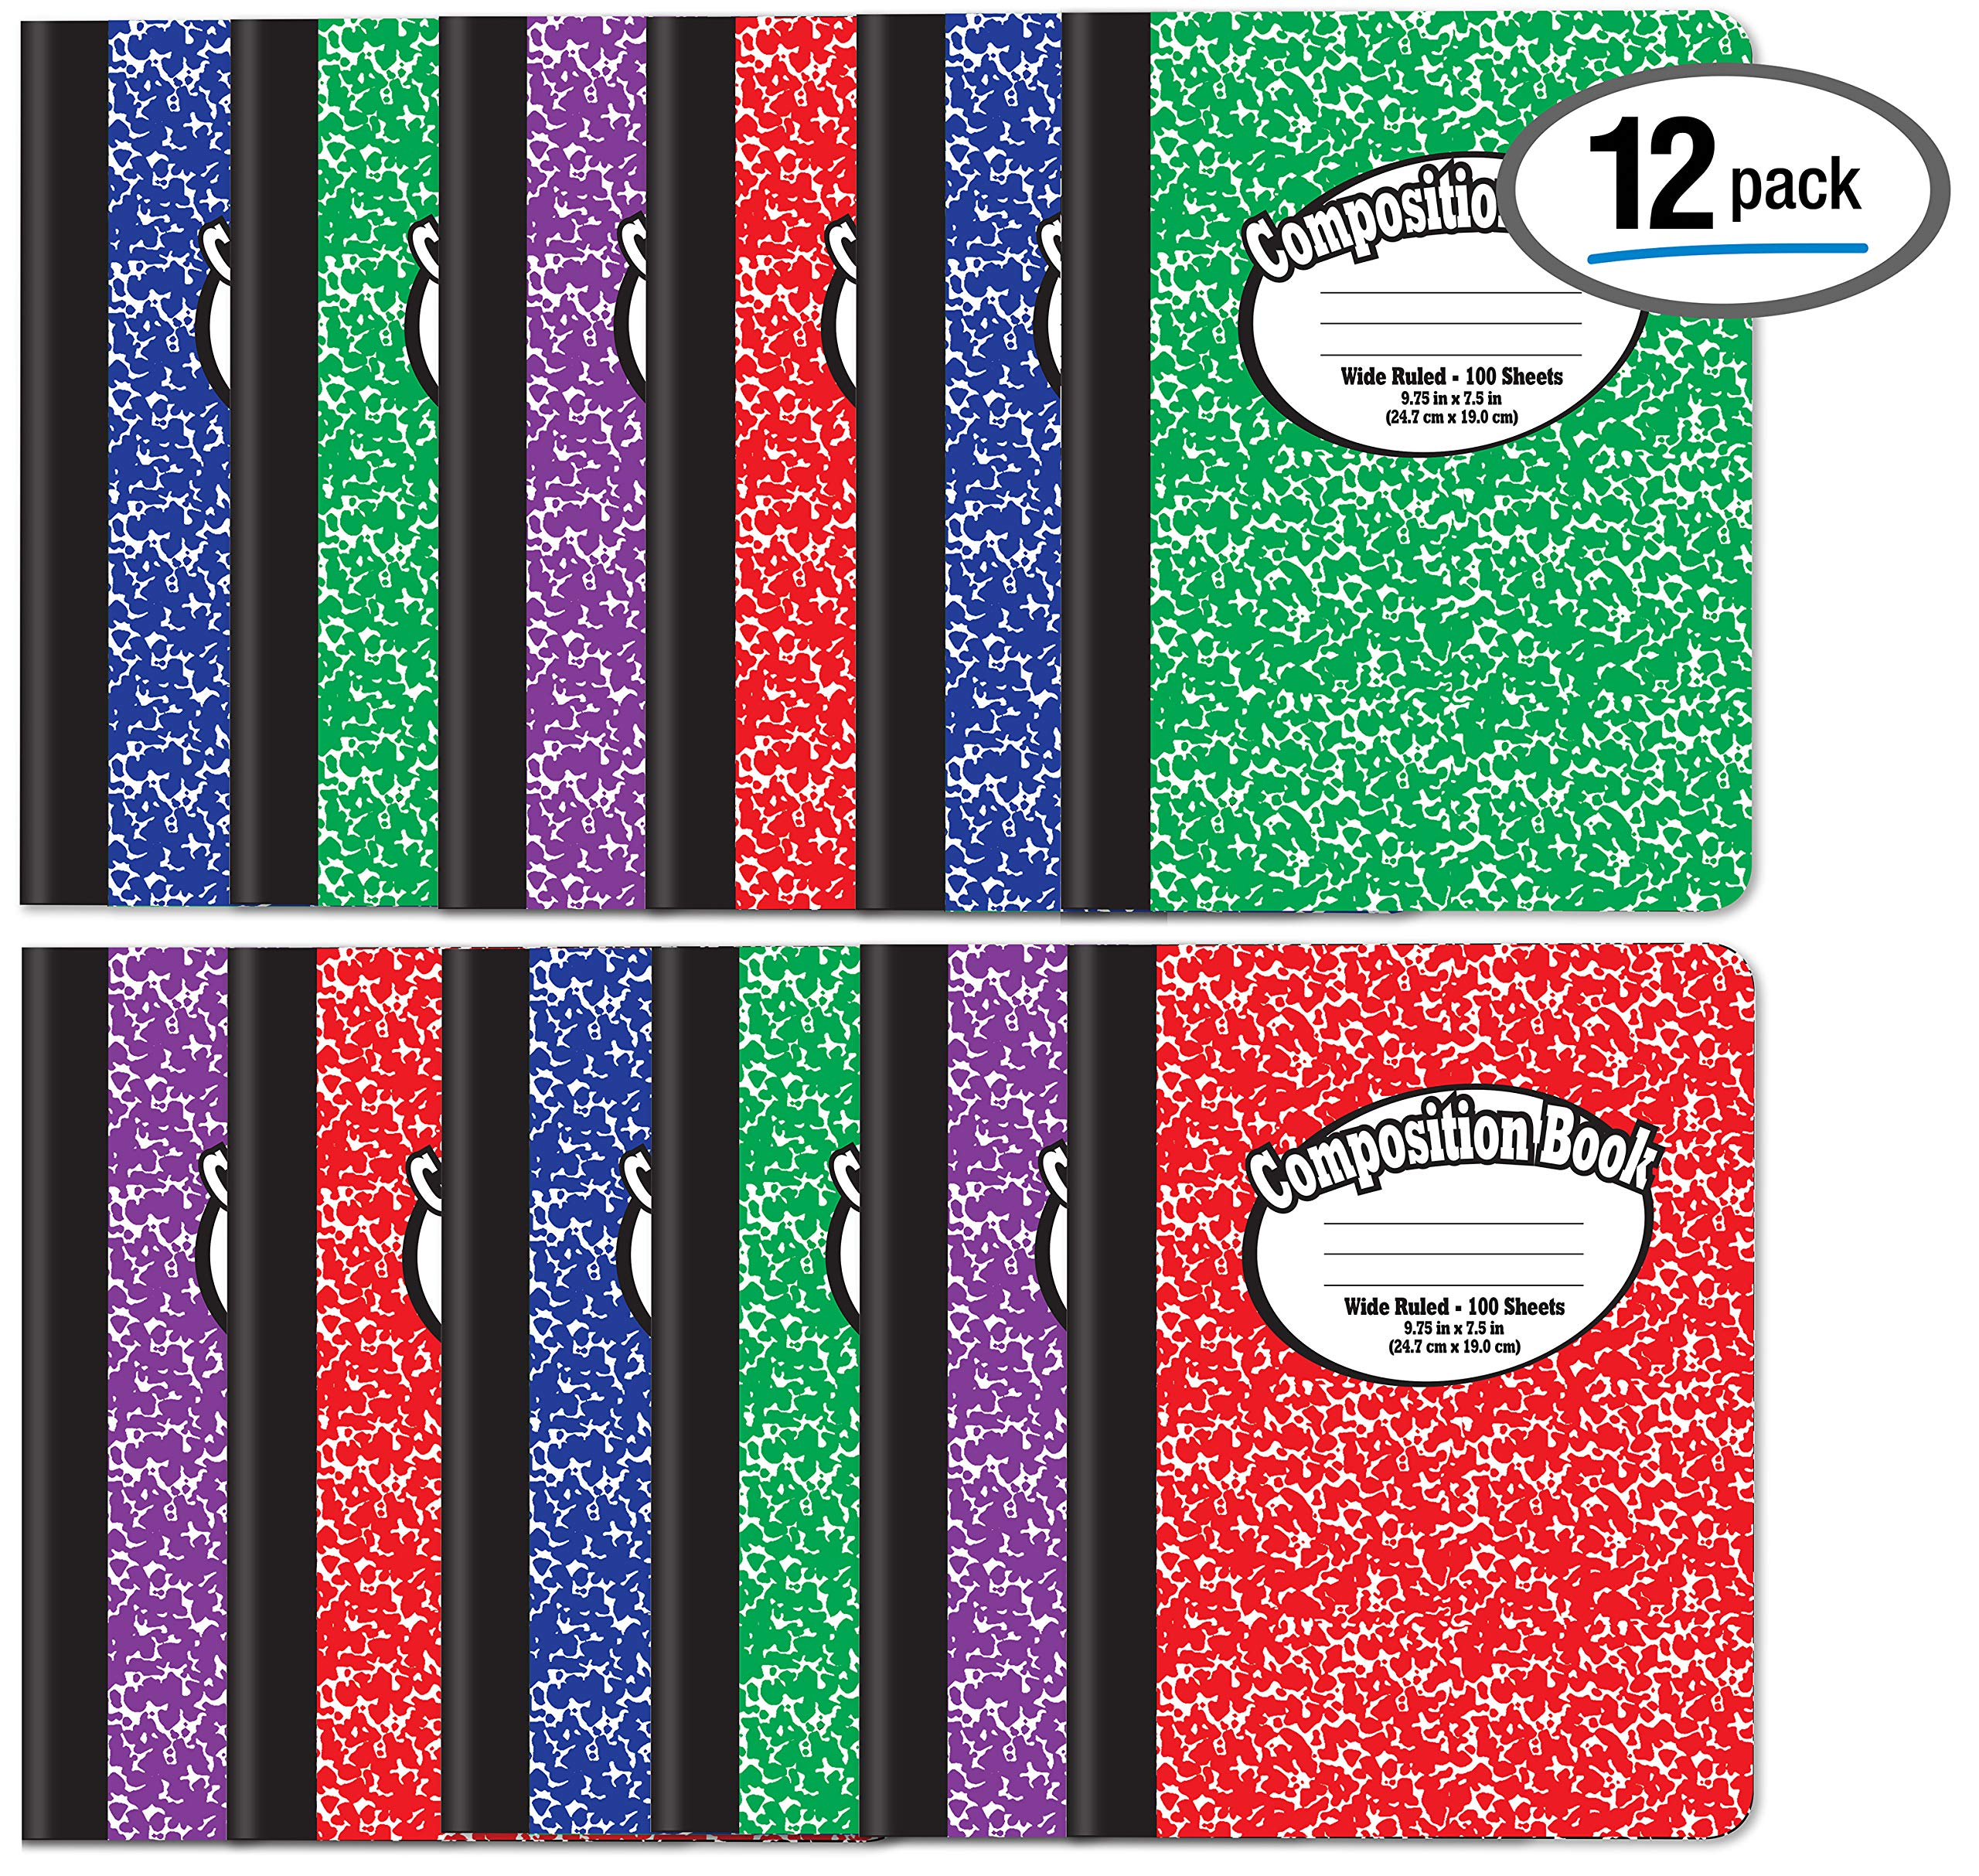 Composition Book Notebook - Hardcover, Wide Ruled (11/32-inch), 100 Sheet, One Subject, 9.75'' x 7.5'', Assorted Covers: Red, Blue, Green, Purple-12 Pack